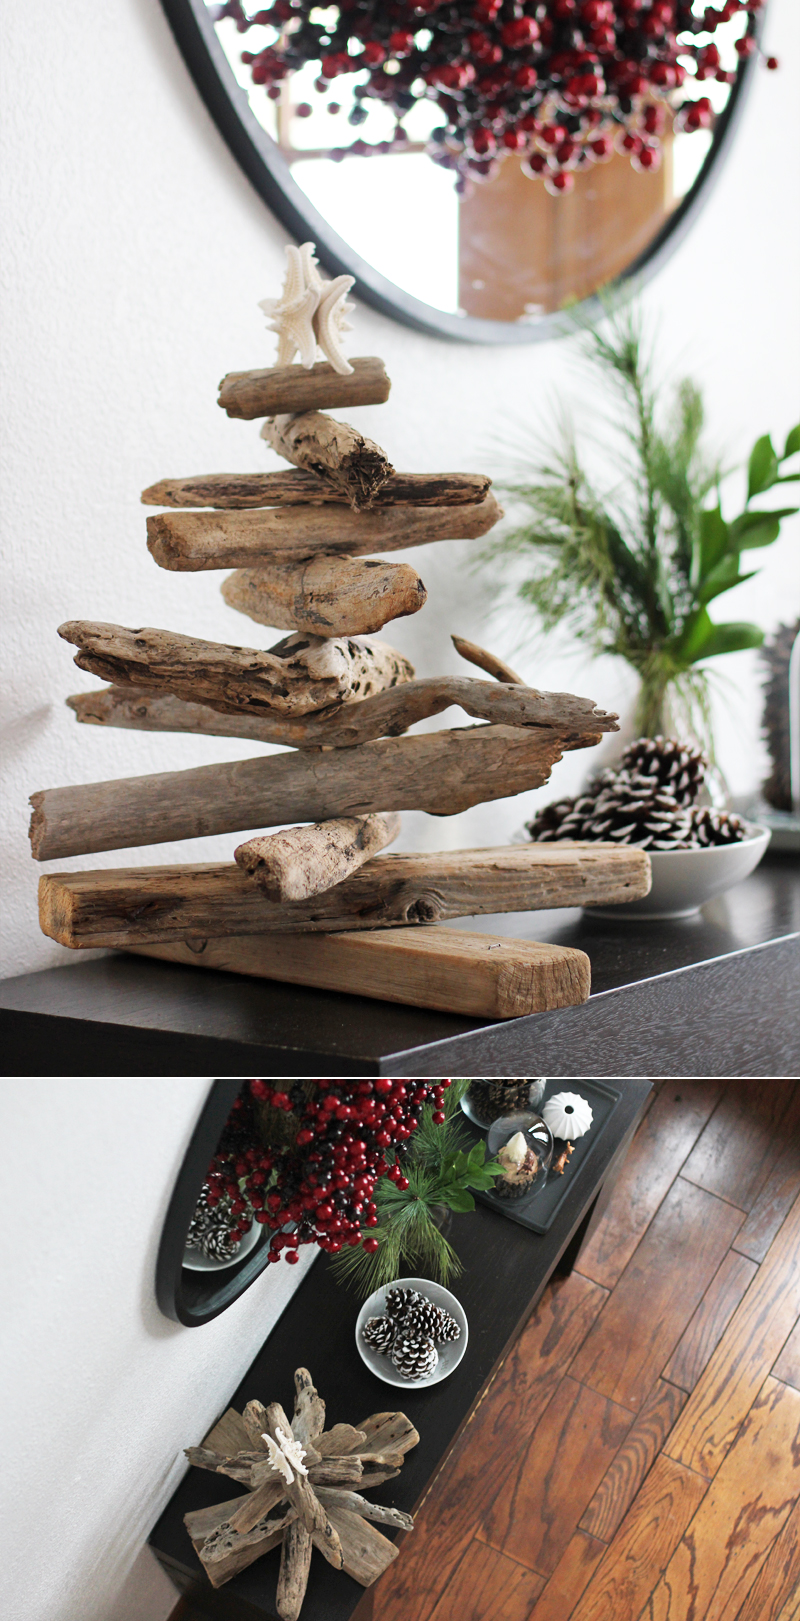 A driftwood Christmas tree in a modern rustic decor